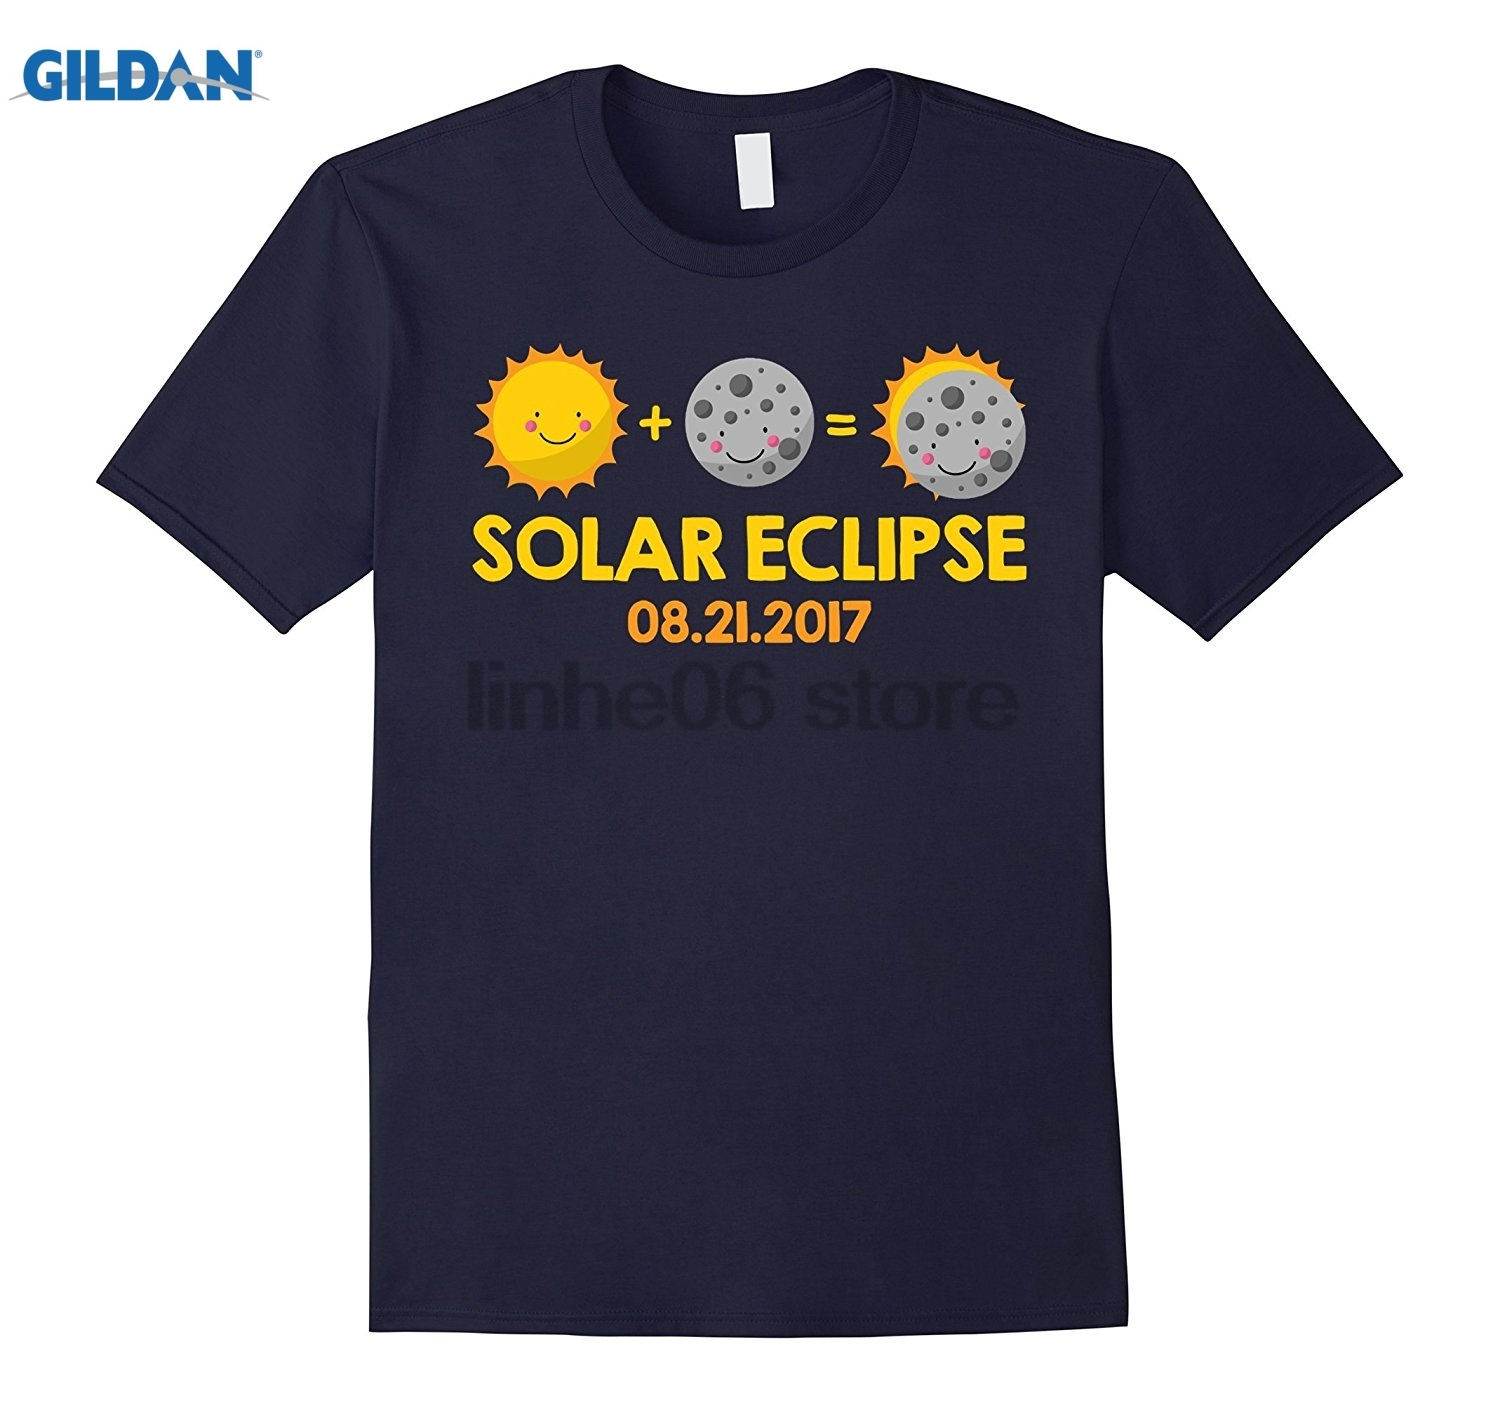 GILDAN Cartoon Solar Eclipse August 21 2017 T-shirt Mothers Day Ms. T-shirt